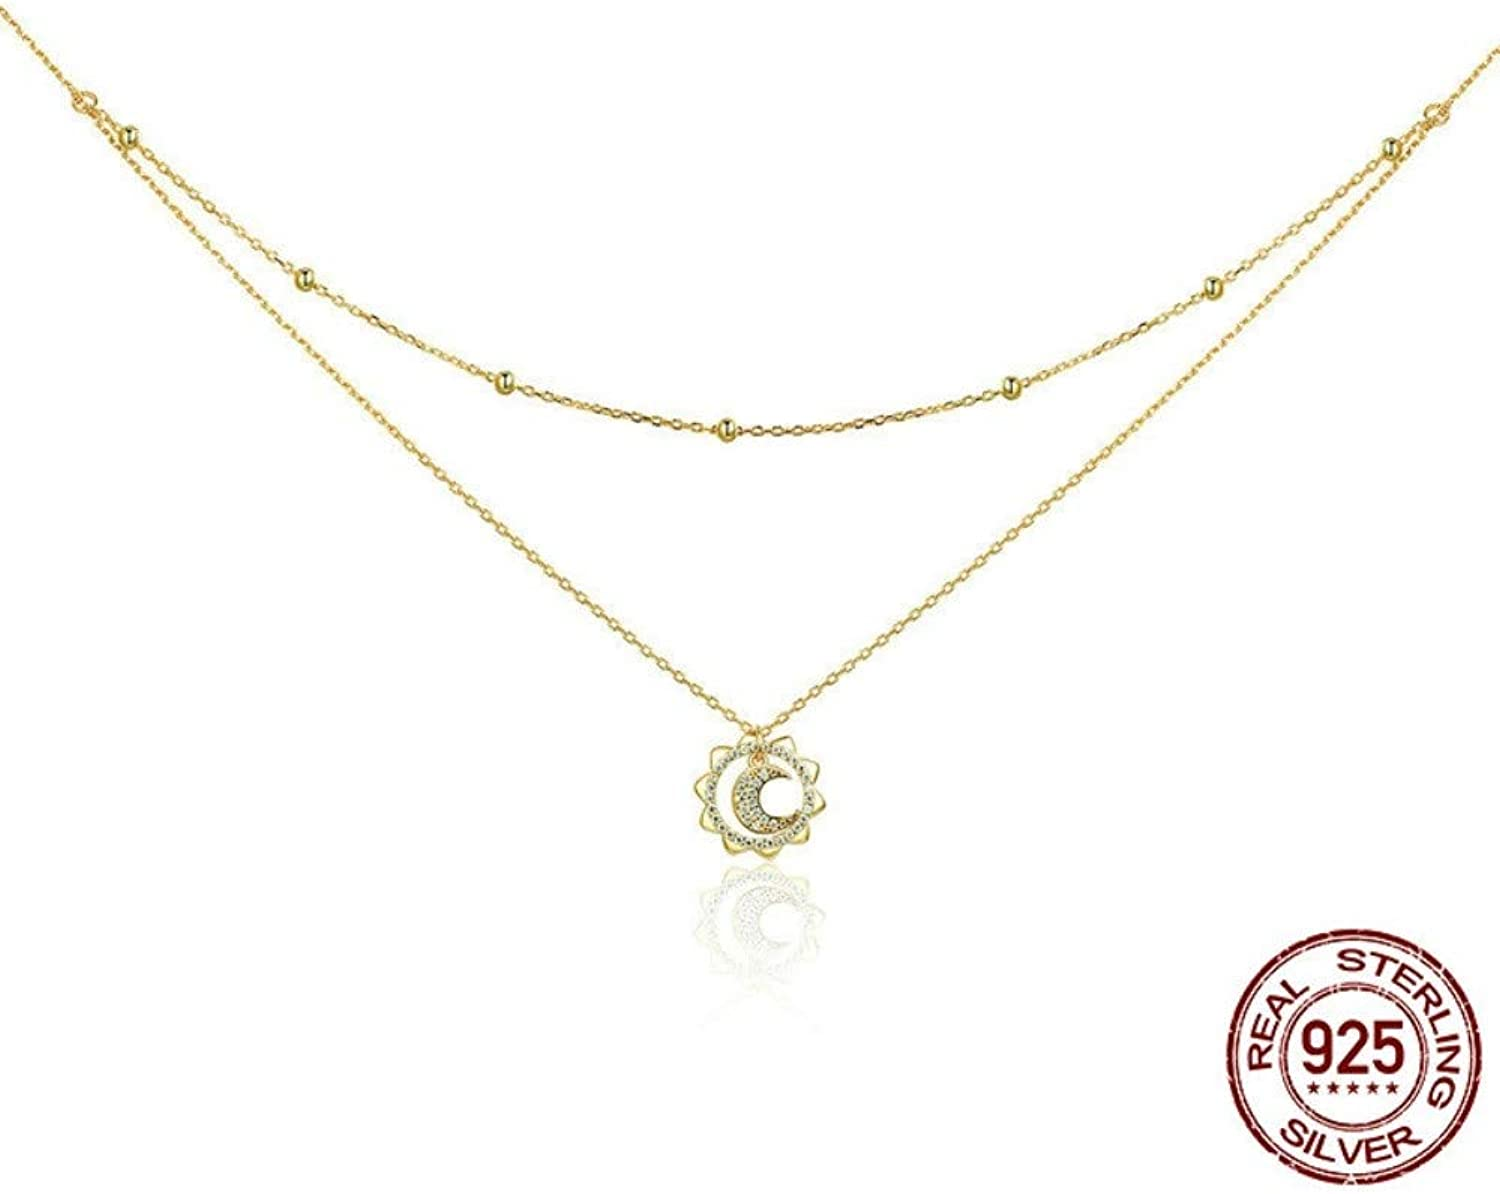 QMM necklace Pendant 100% 925 Sterling Silver & gold color Moon in Sun Pendant Necklace for Women Birthday Jewelry Fashion